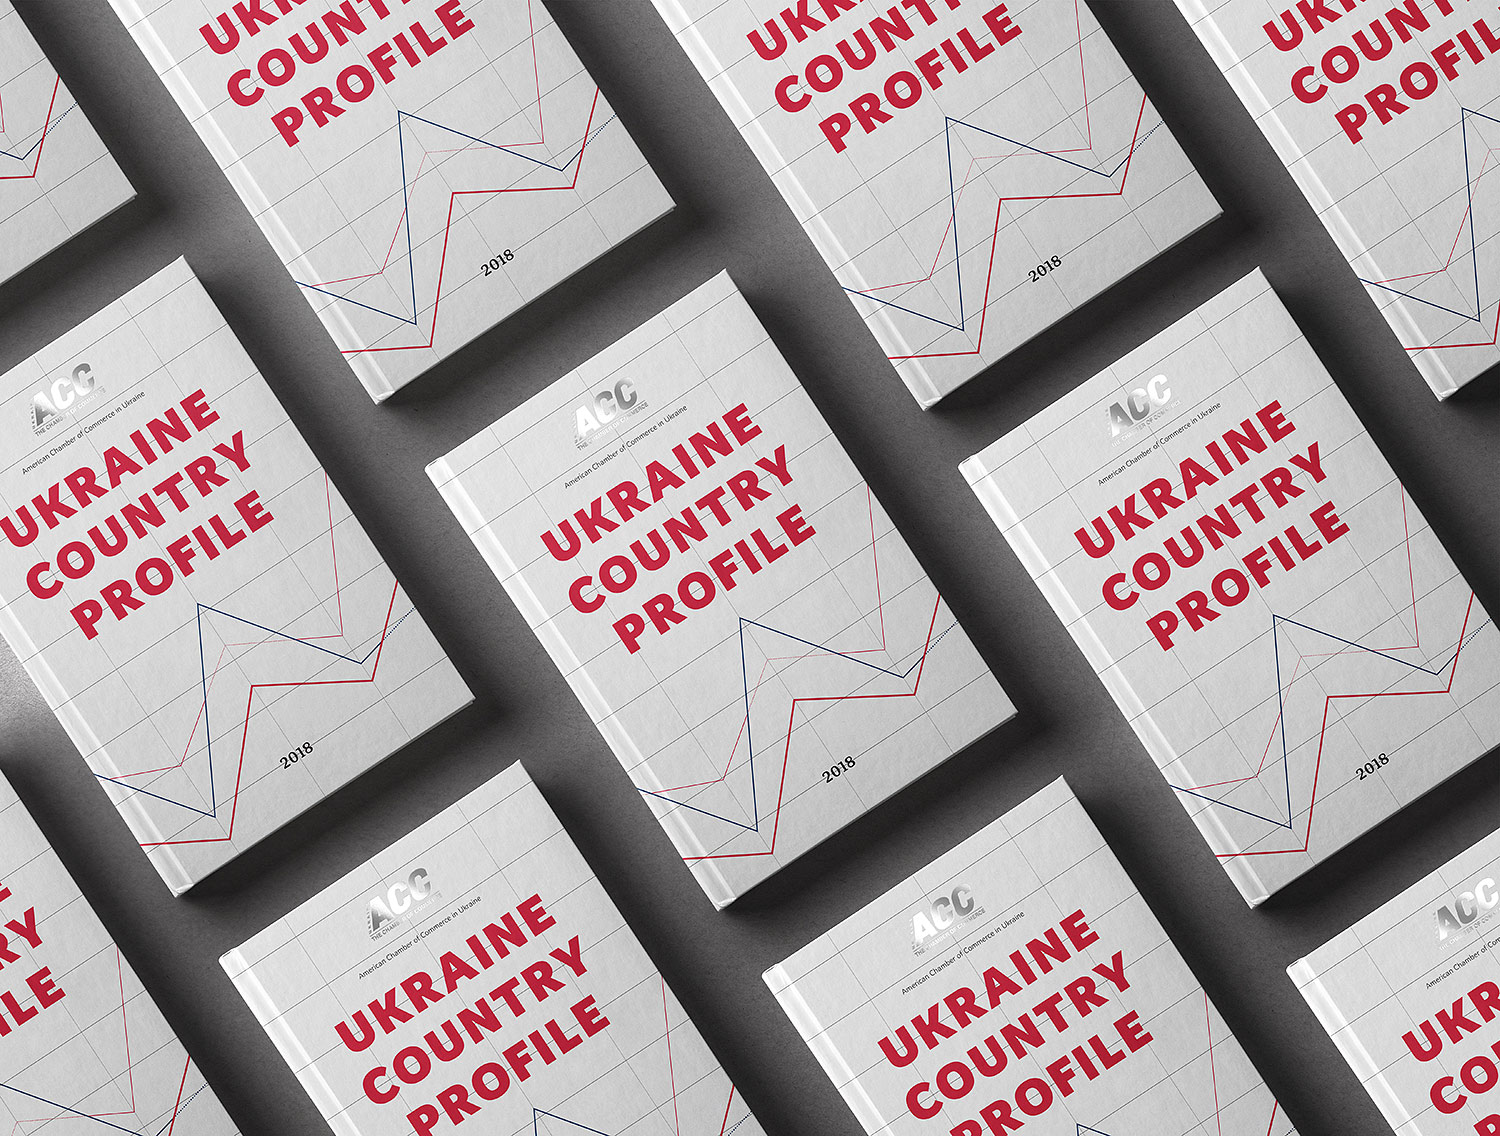 Business design of the cover for financial and analytical publication. Ukraine Country Profile 2018.